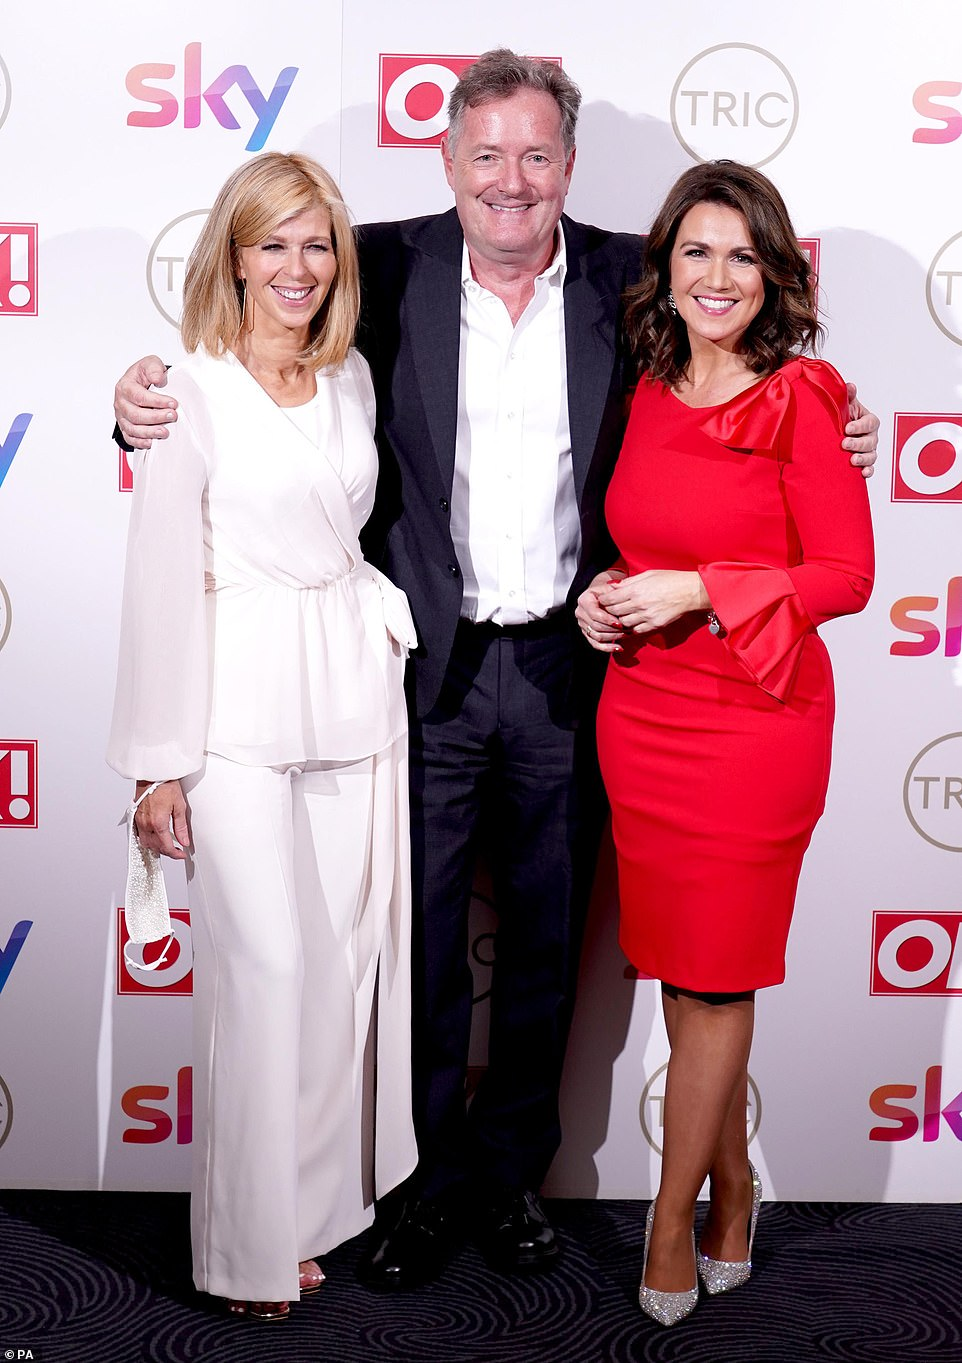 Colleagues: Piers threw his arms around the ladies, proving there was no grudge between the trio